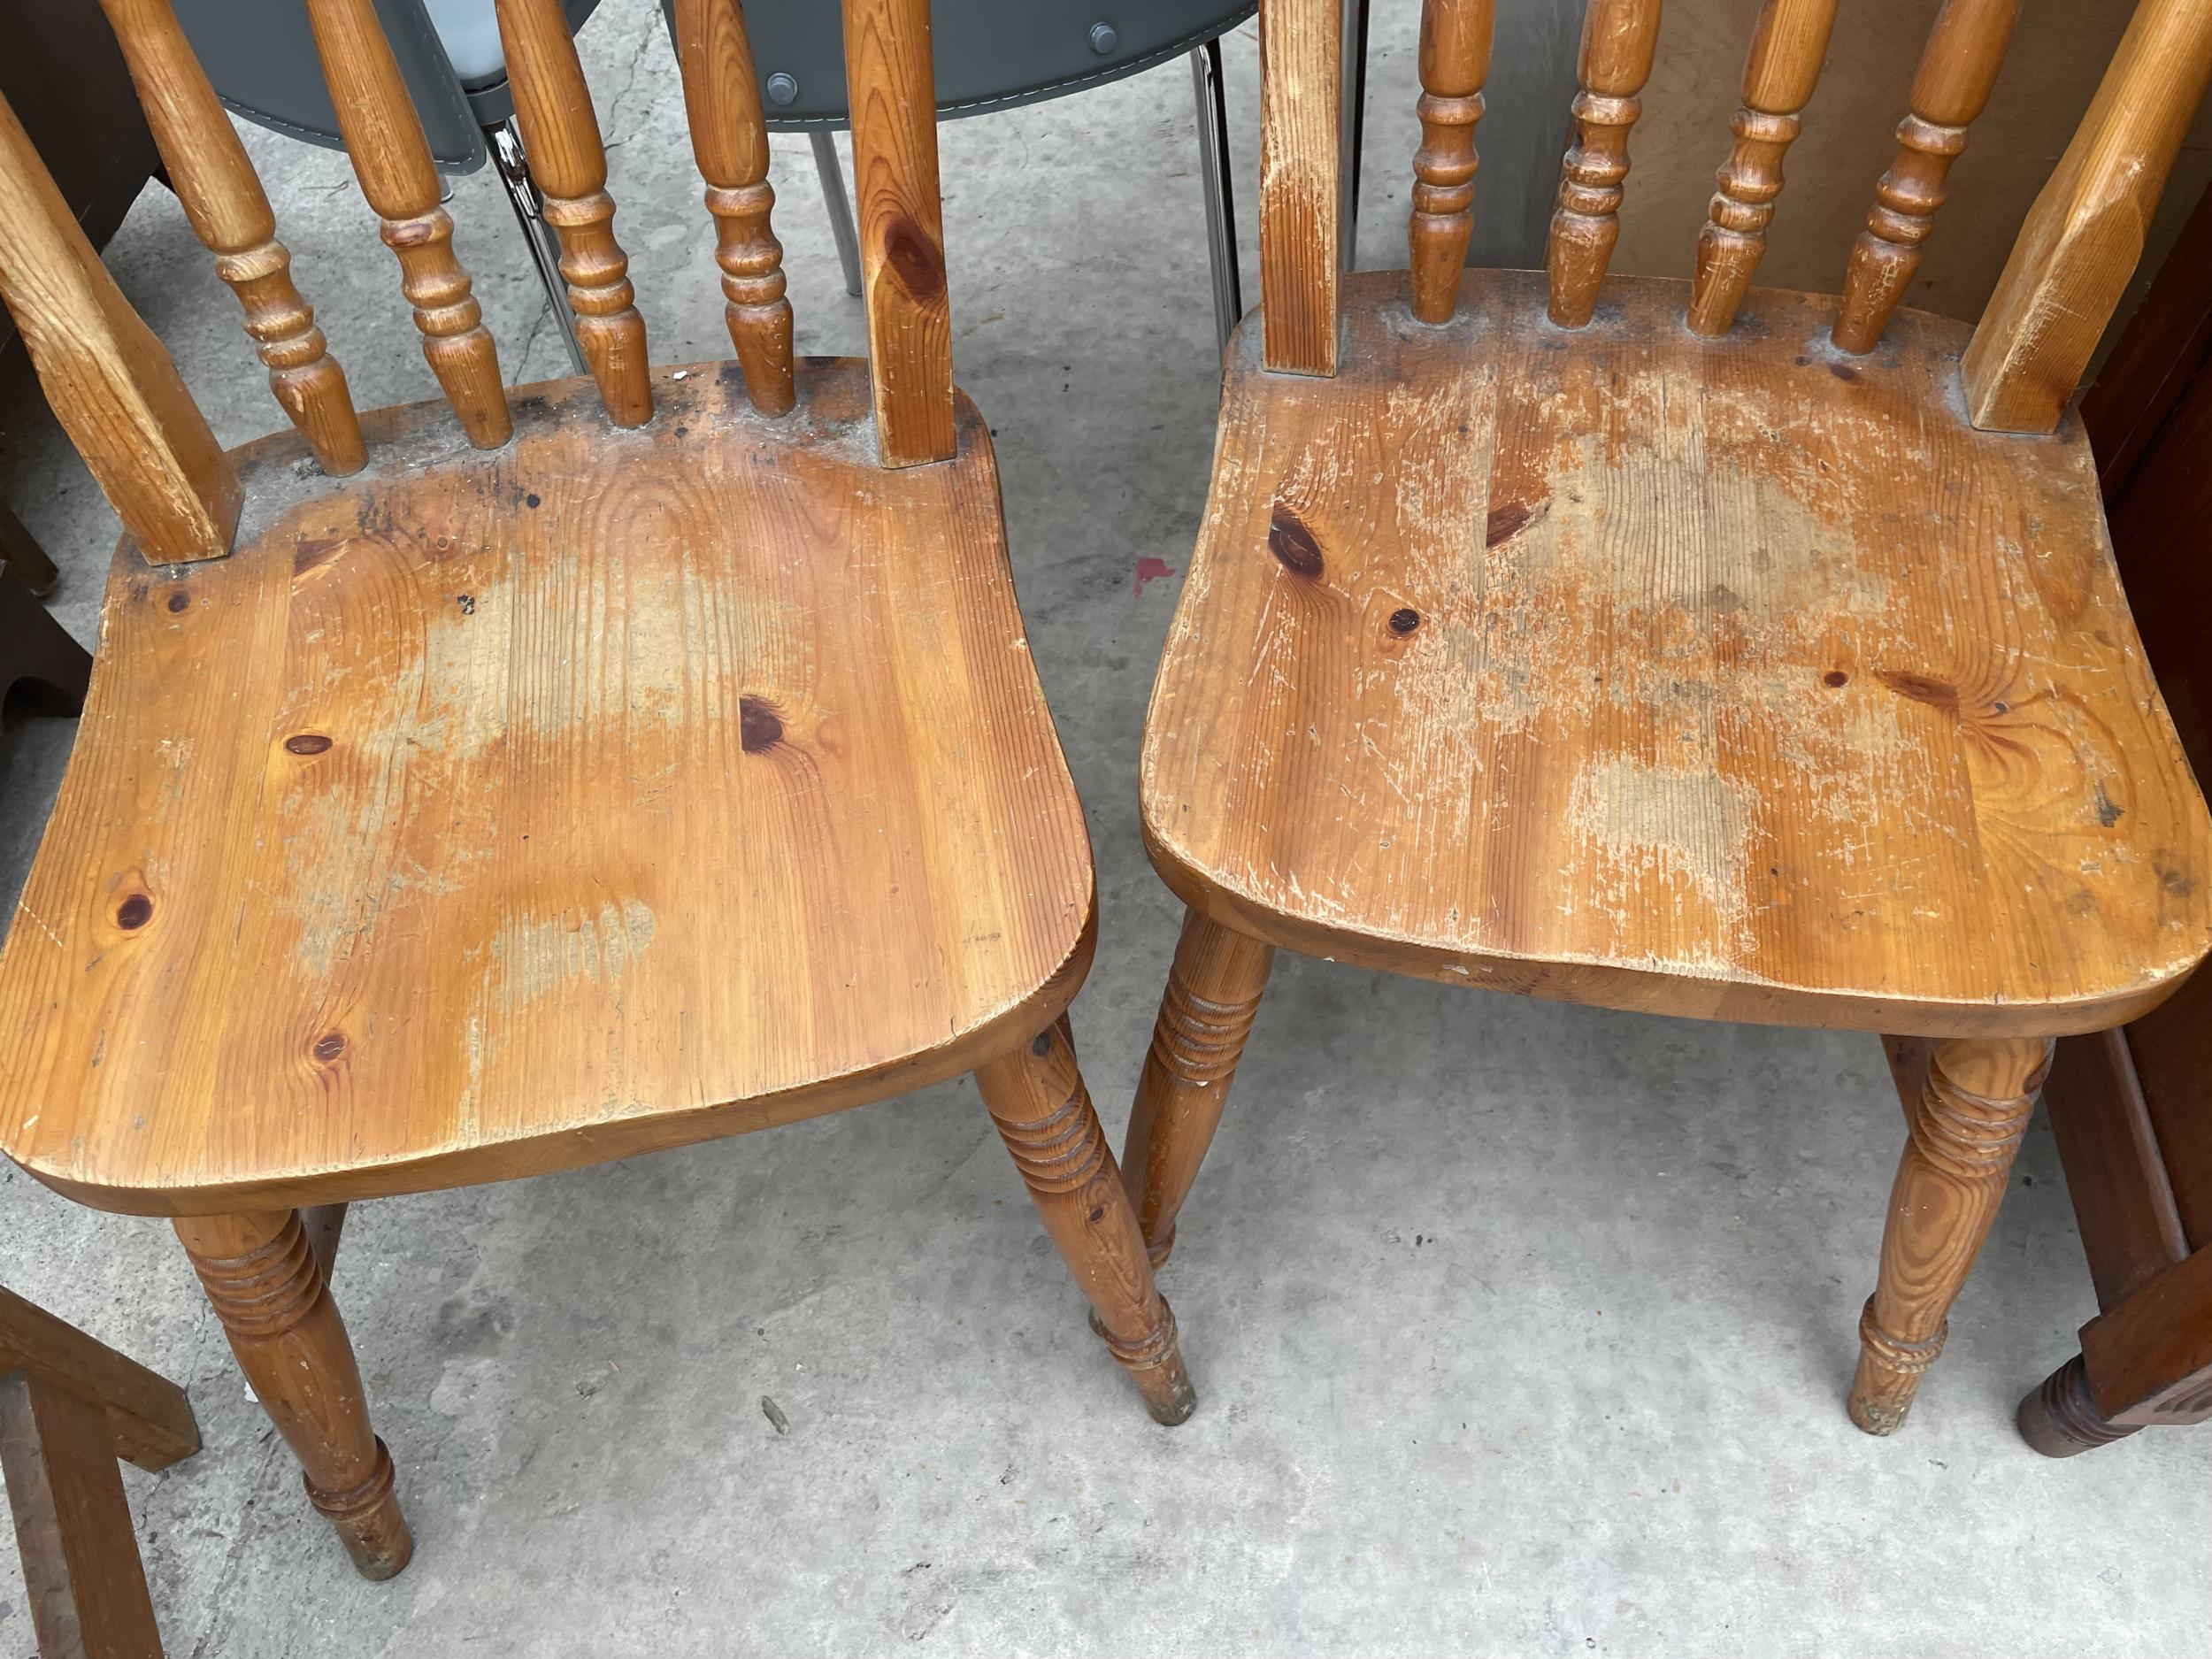 A PAIR OF PINE VICTORIAN STYLE KITCHEN CHAIRS AND SINGLE DITTO - Image 3 of 4